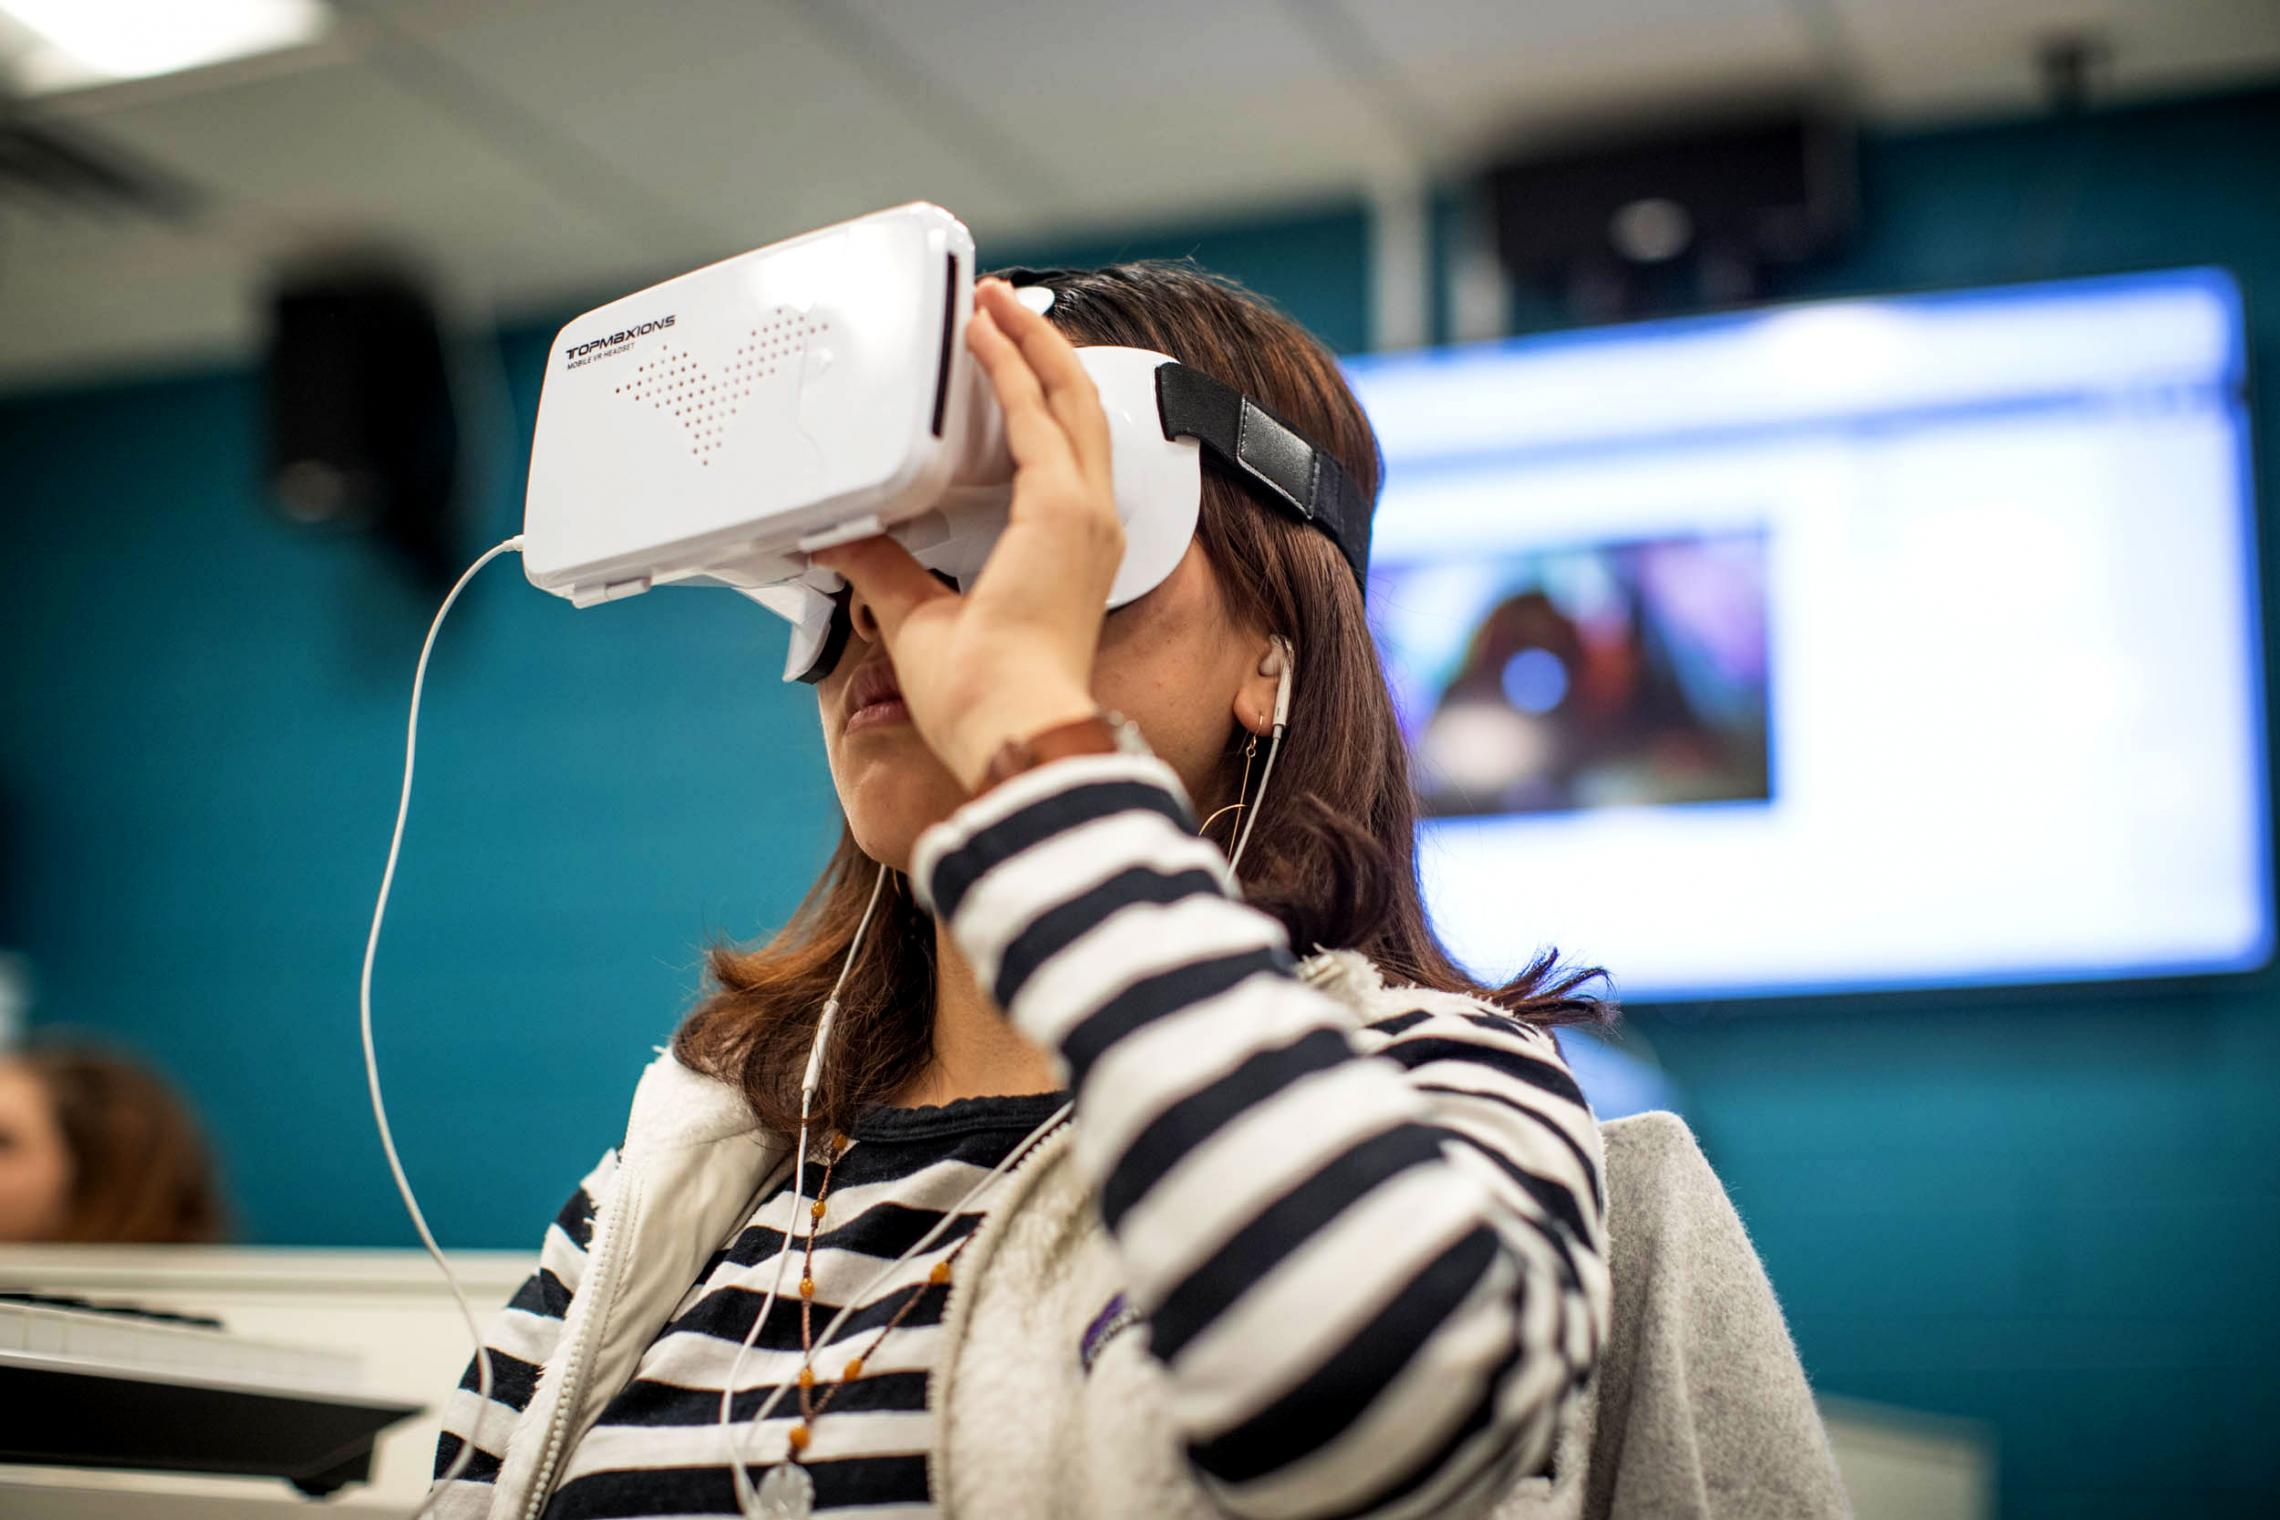 The students learned about virtual reality and 360-degree filming technology and made their own 360-degree films.